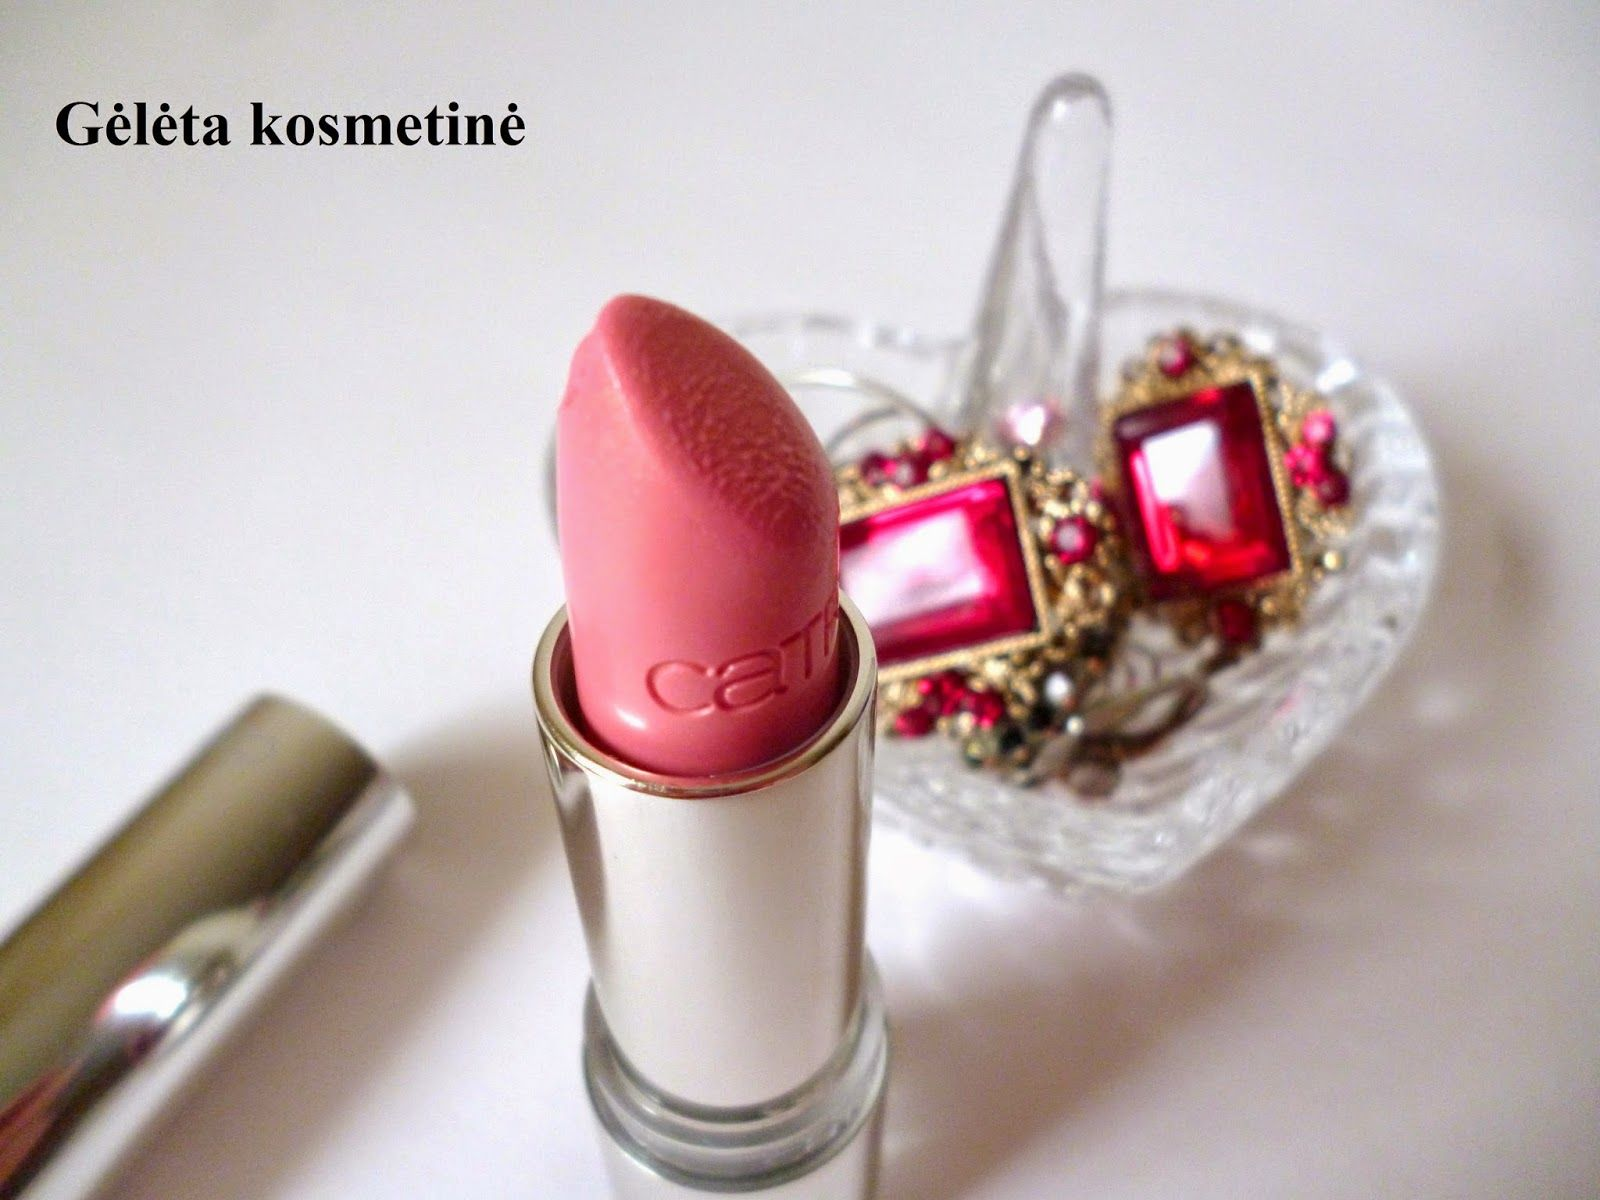 "Gėlėta kosmetinė: CATRICE Ultimate Shine lūpų dažai 250 - Yes, We Can-dy!""  REVIEW. CATRICE Ultimate Shine lipstick 250 - Yes, We Can-dy!"""